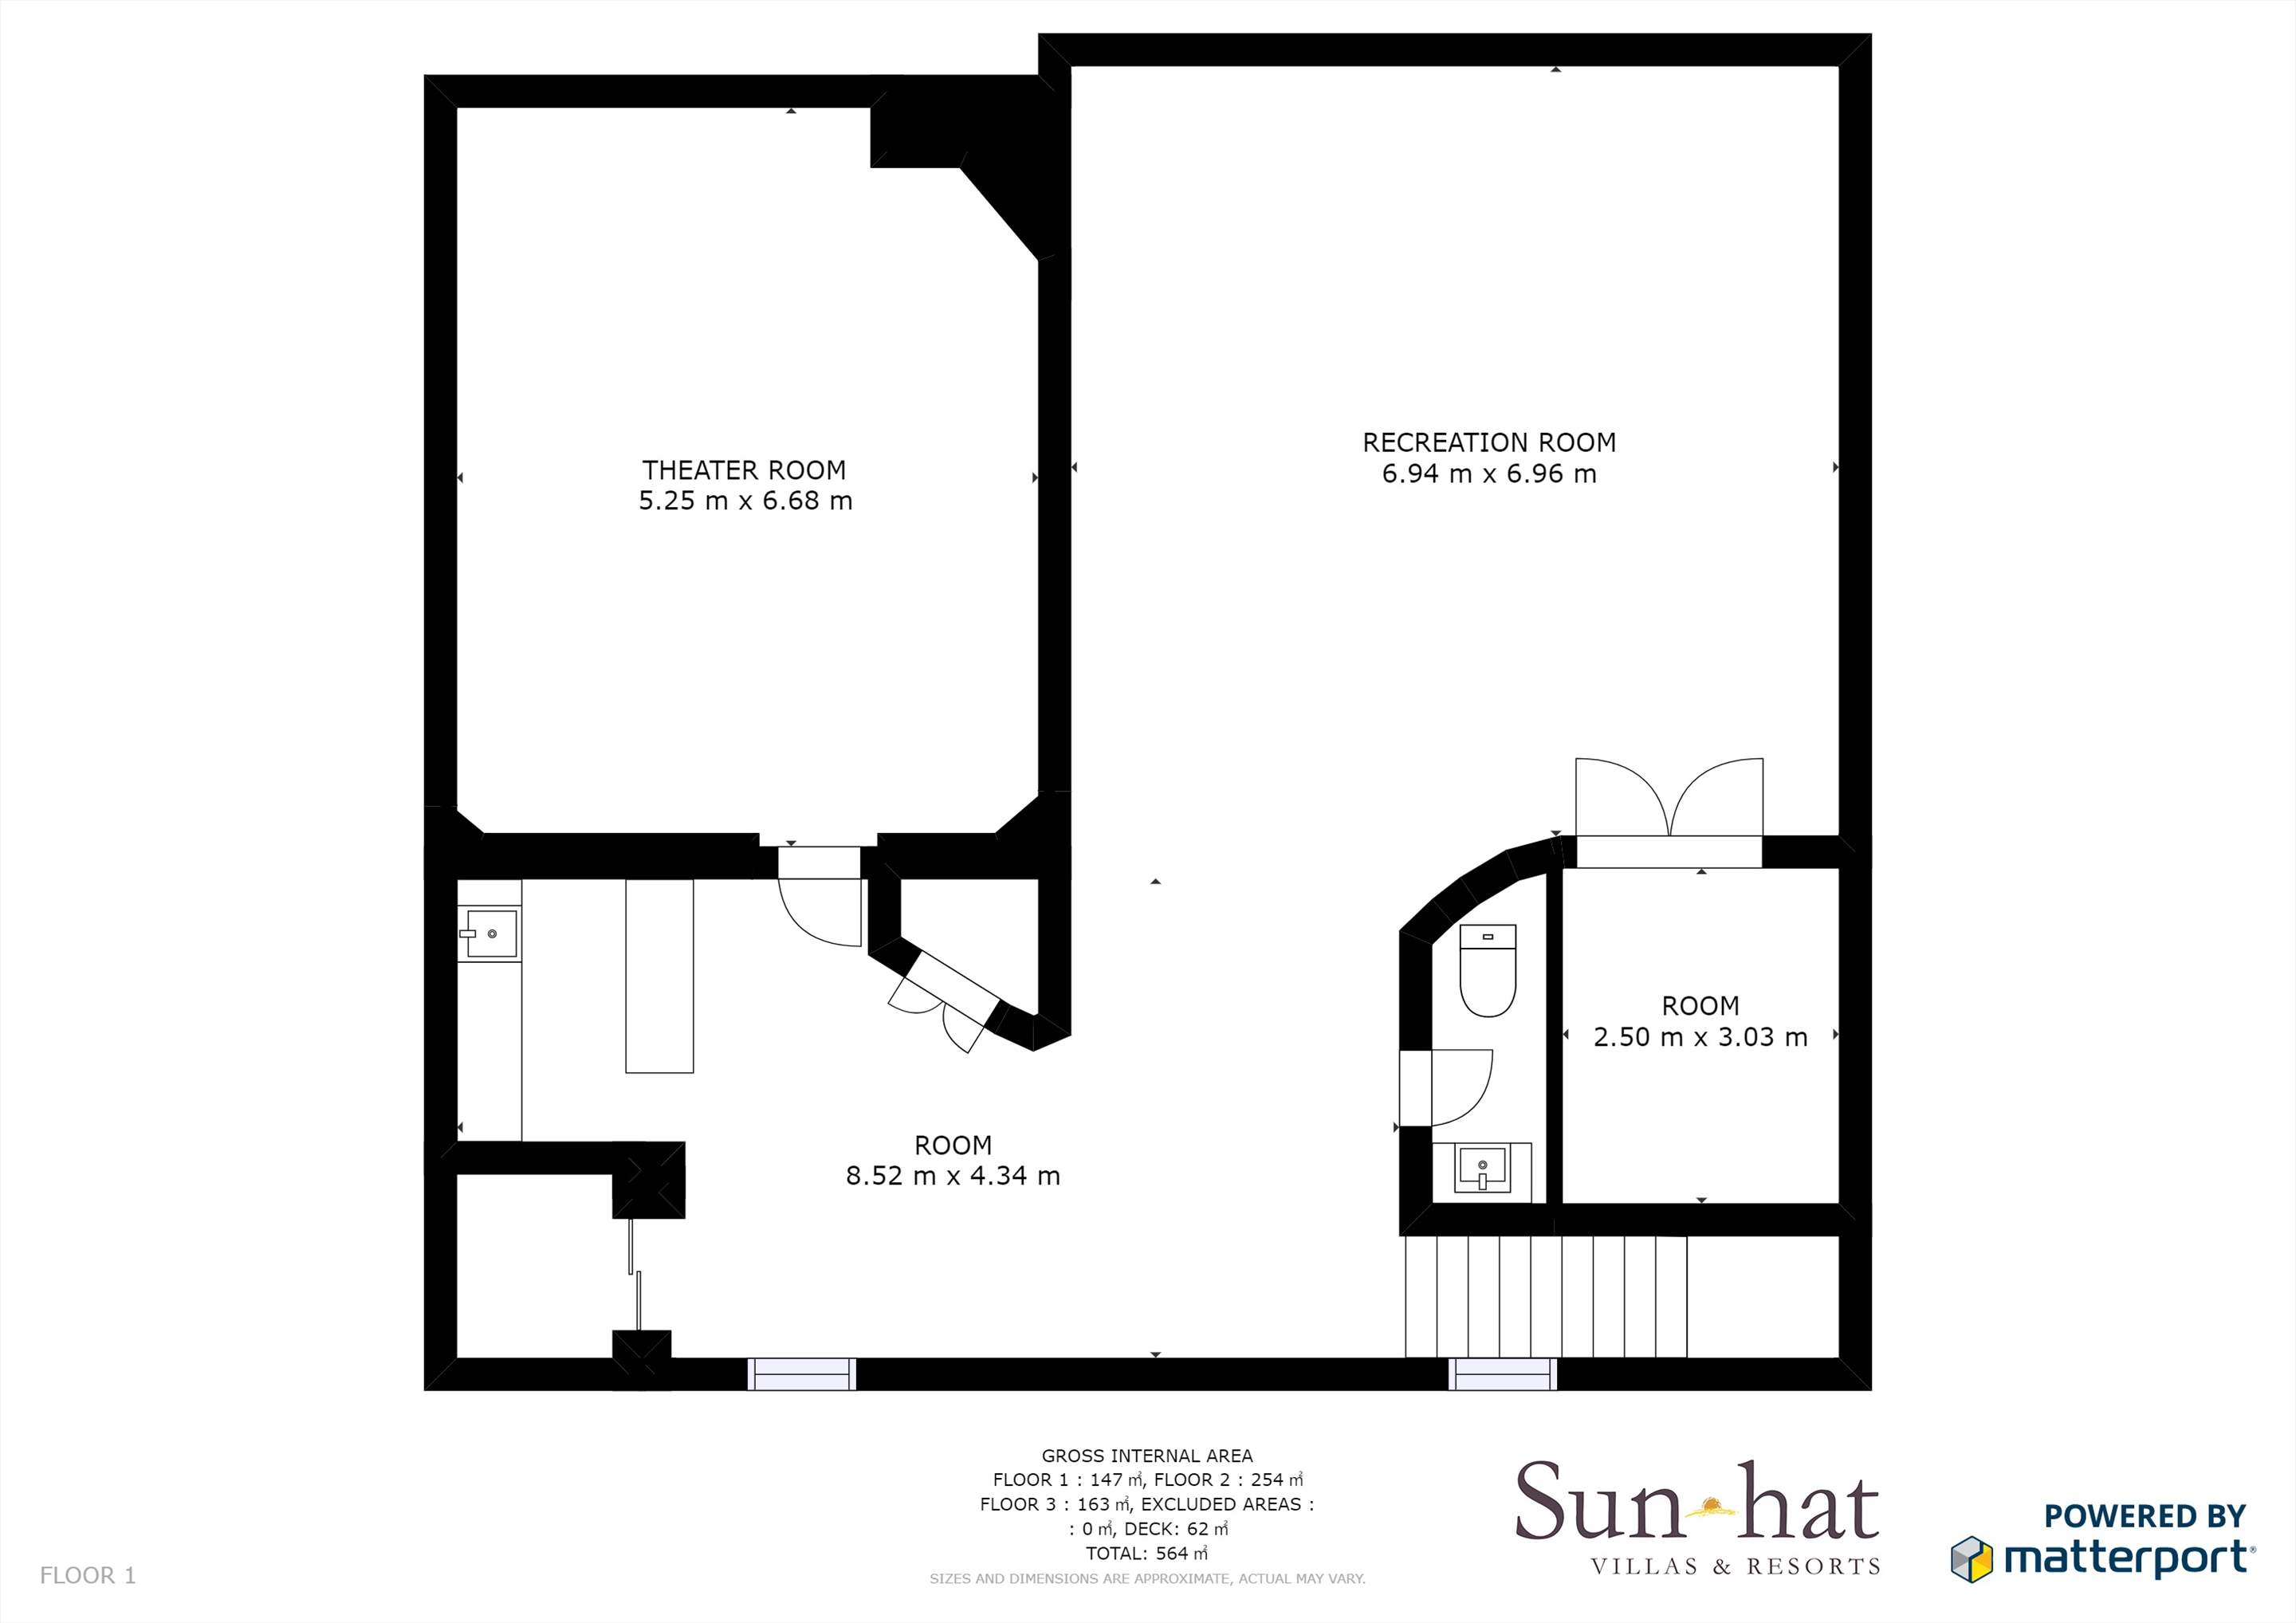 Villa Lantana 2, Main house & Annexe, 6 bedrooms Floorplan #1